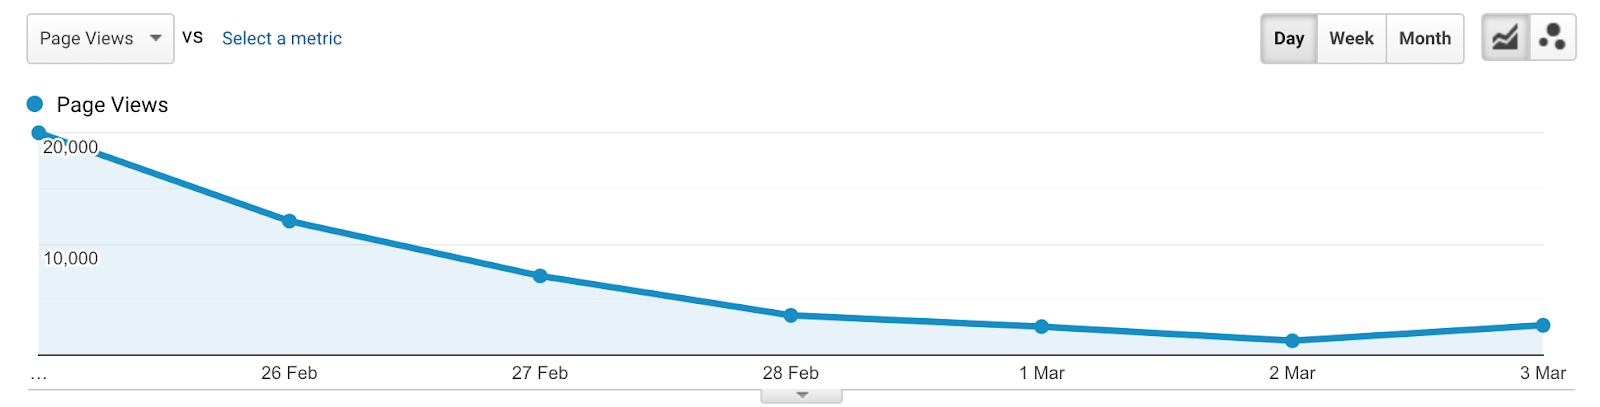 February 2019 - Startup Cemetery Launch Traffic